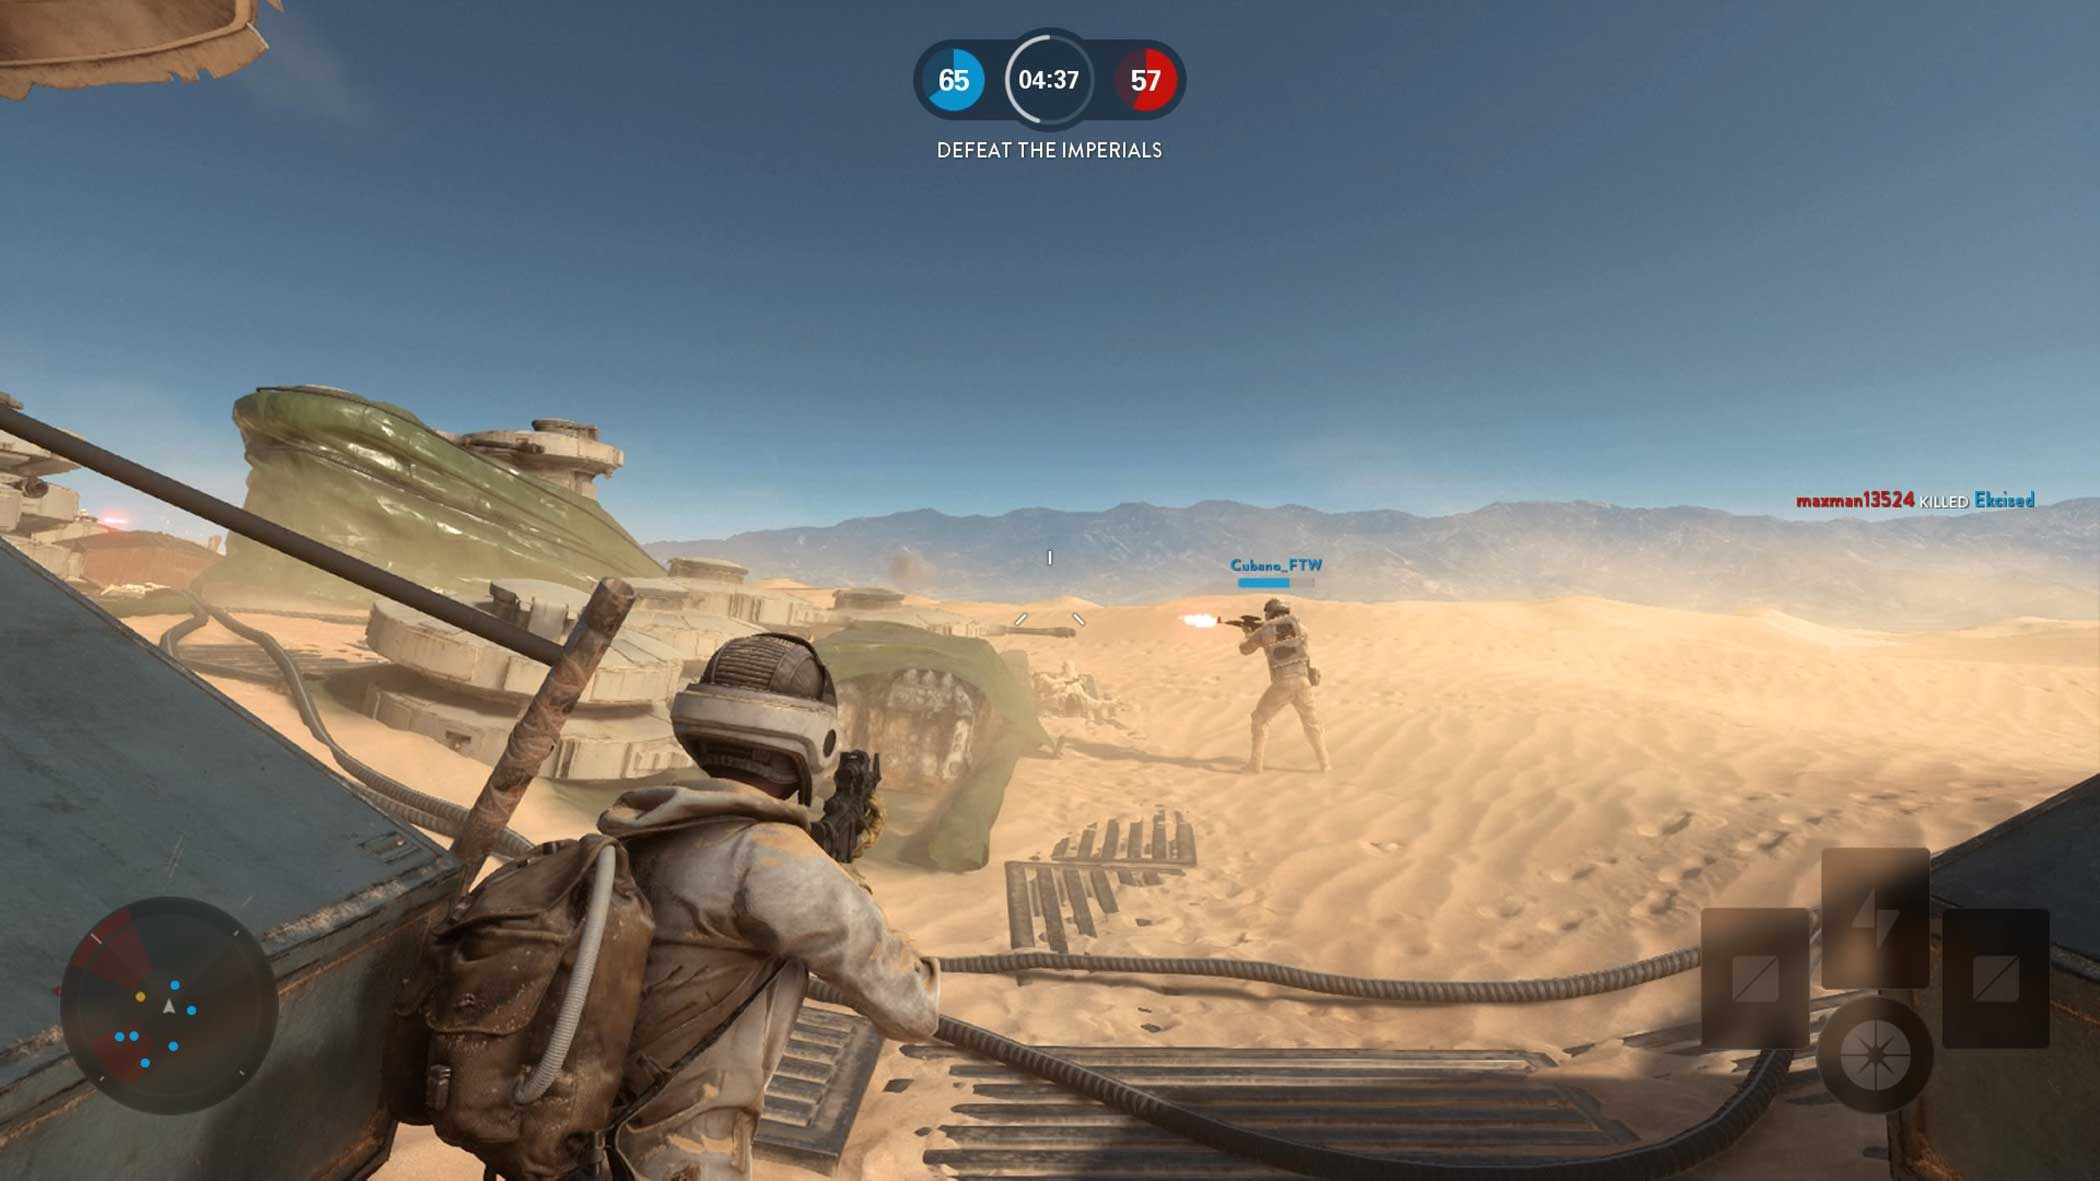 """<b>Star Wars Battlefront</b> Design Process:<i> """"We wanted to build a game that was faithful to the Star Wars we love, using a combination of the latest technology, with talented artists who could put it together in a way that feels immersive and inviting.""""</i> - Johannes Soderqvist, Art Director, Star Wars Battlefront"""